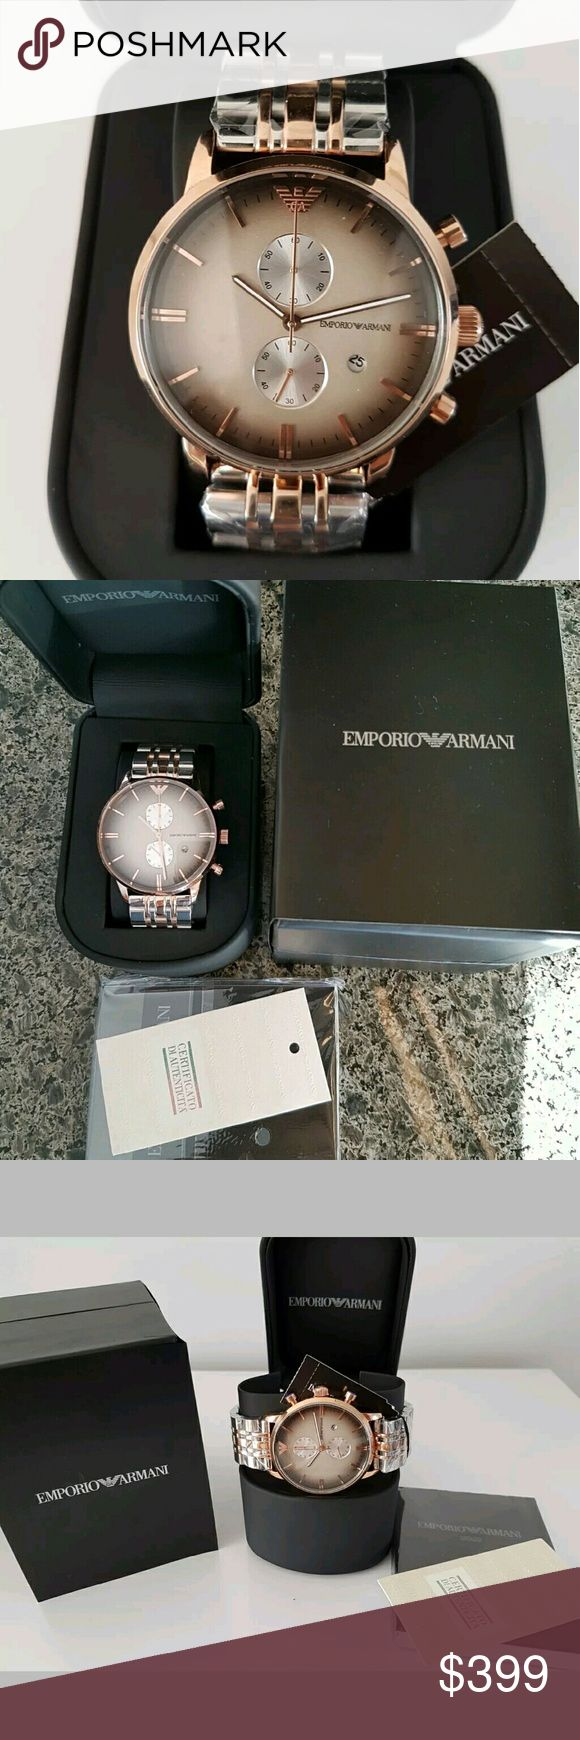 NWT Emporio Armani grey & rose gold Men's watch NWT $500 Emporio Armani Mens Grey and Rose Gold Watch   FIRM PRICE  $399.00 . AUTHENTIC WATCH  . AUTHENTIC BOX  . AUTHENTIC MANUAL   SHIPPING  PLEASE ALLOW FEW BUSINESS DAYS FOR ME TO SHIPPED IT OFF.I HAVE TO GET IT FROM MY WAREHOUSE   THANK YOU FOR YOUR UNDERSTANDING    Case diameter	43 millimeters Case Thickness	12 millimeters Band width	22 millimeters emporio Armani  Accessories Watches